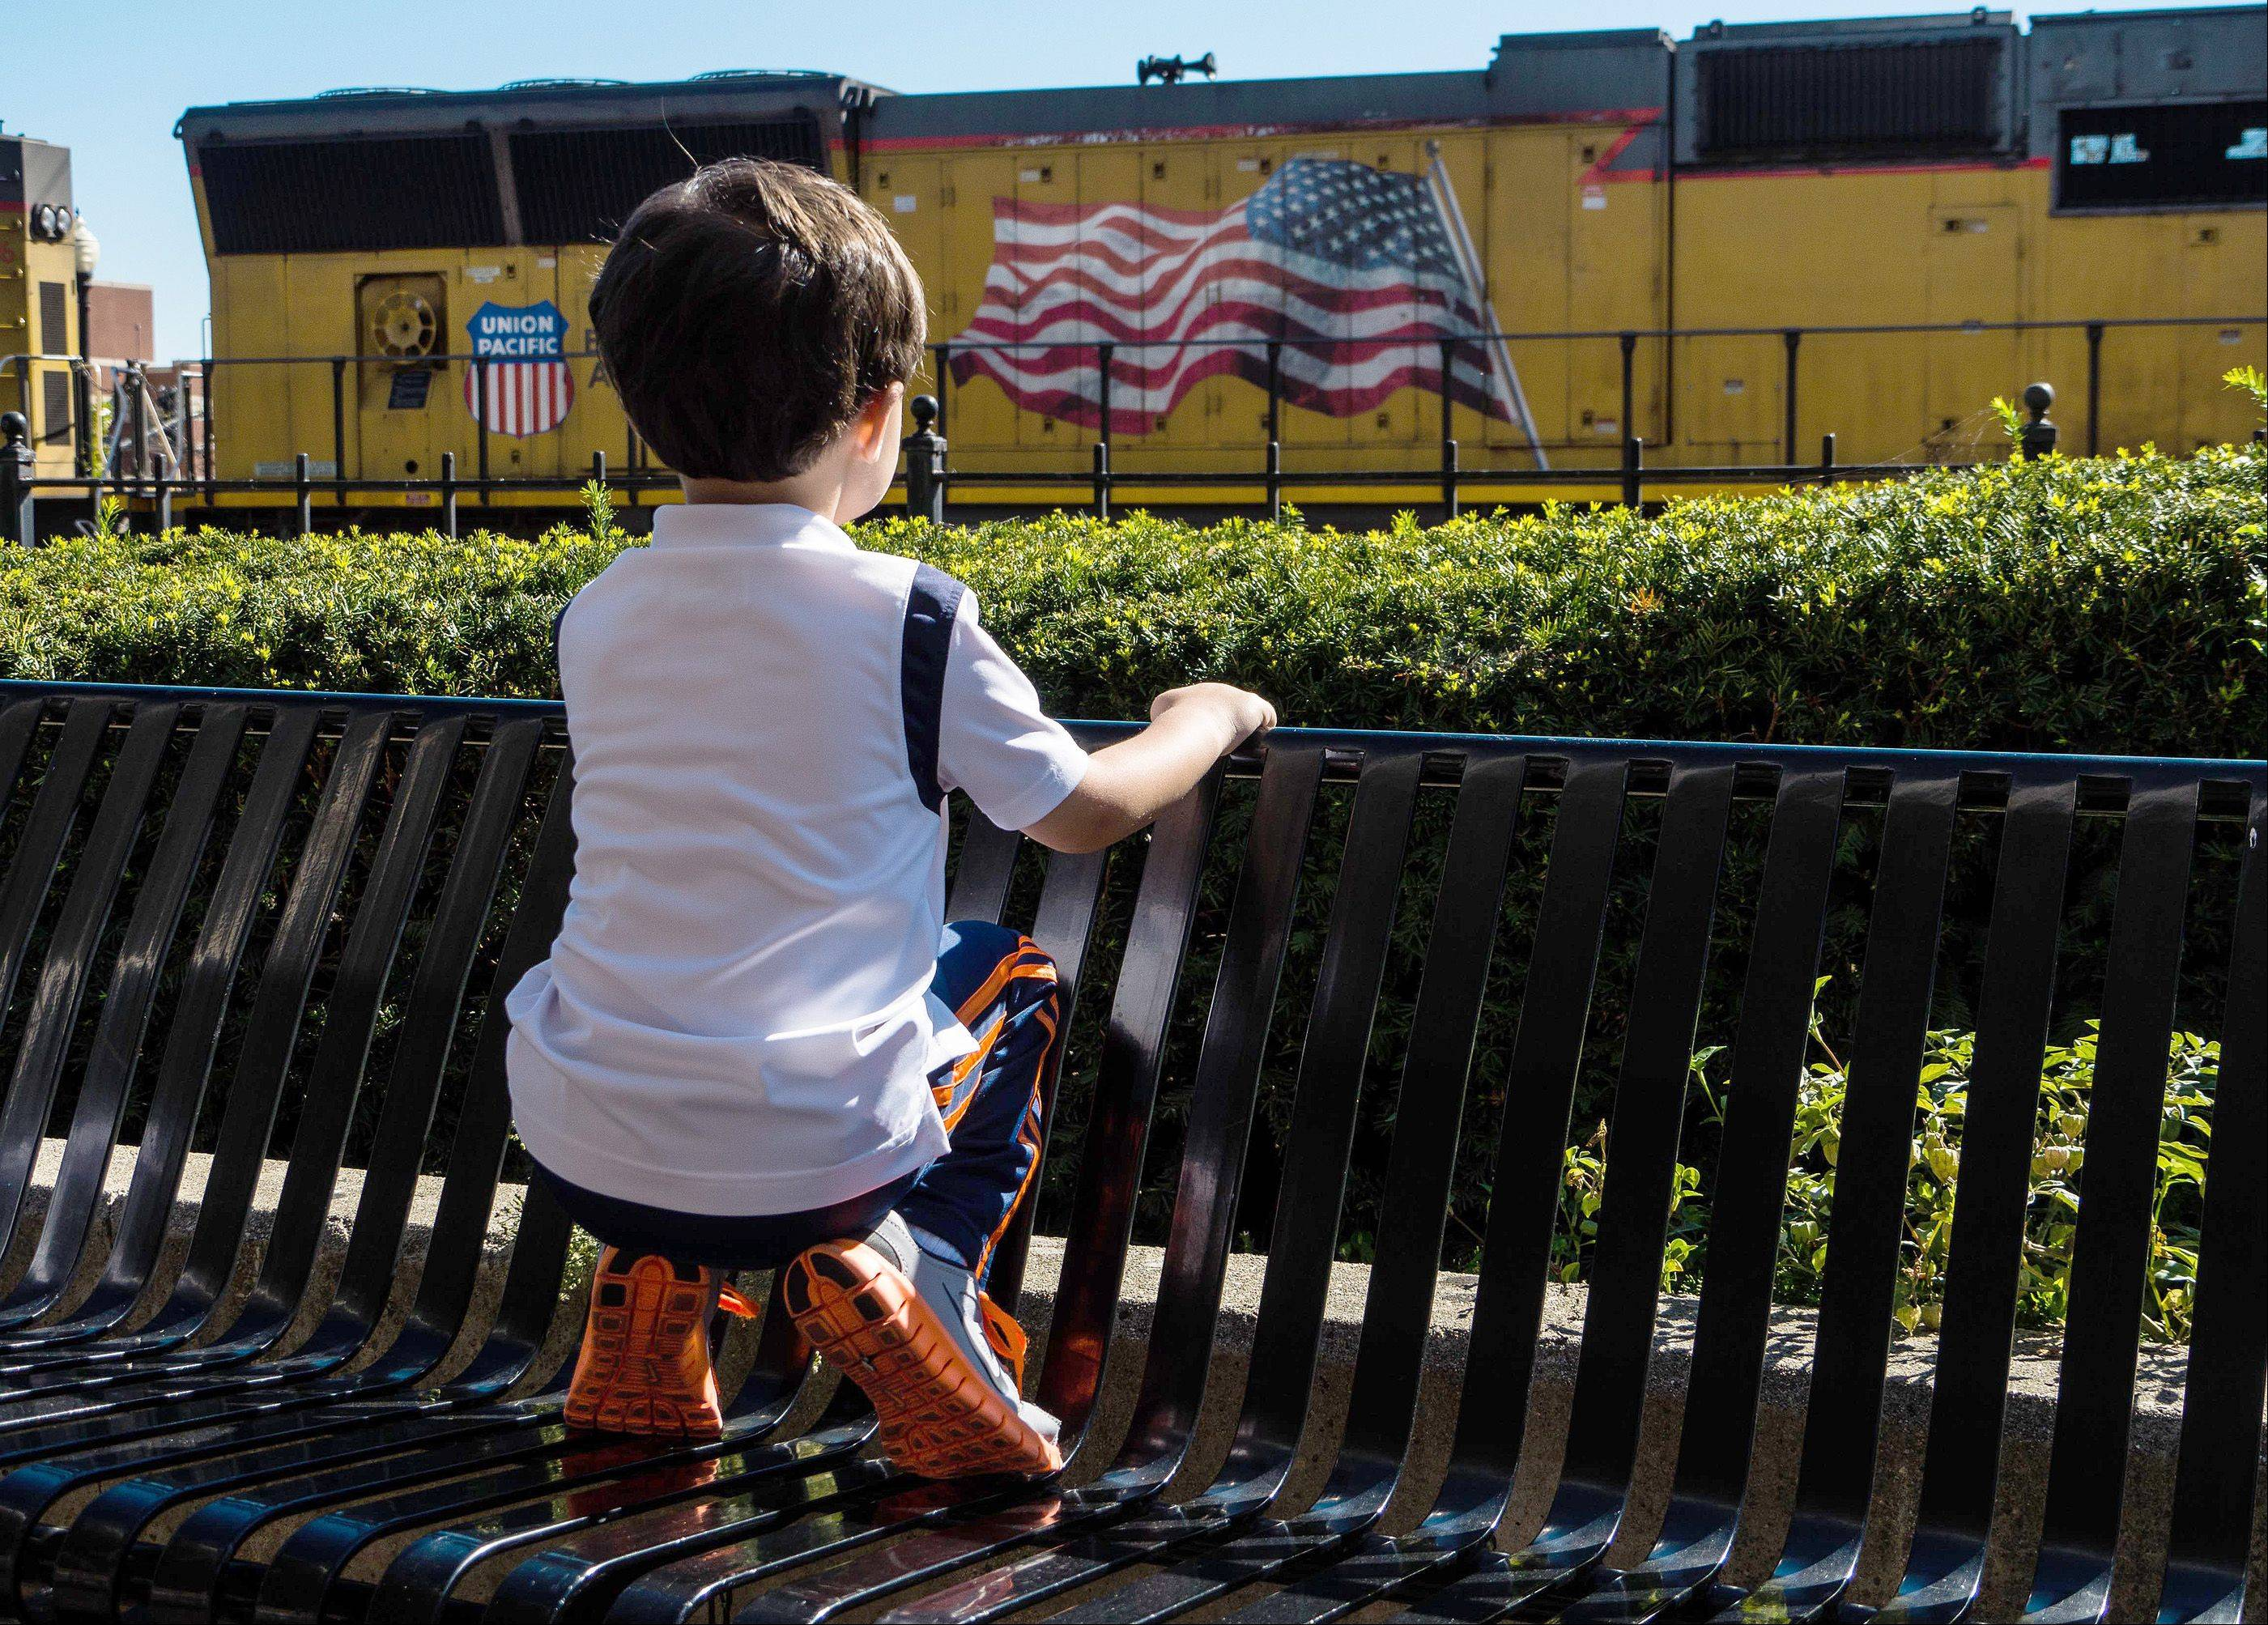 My grandson loves trains. This was taken at the fountain plaza in downtown Wheaton. He heard the train coming and ran to the bench to watch it roll by.